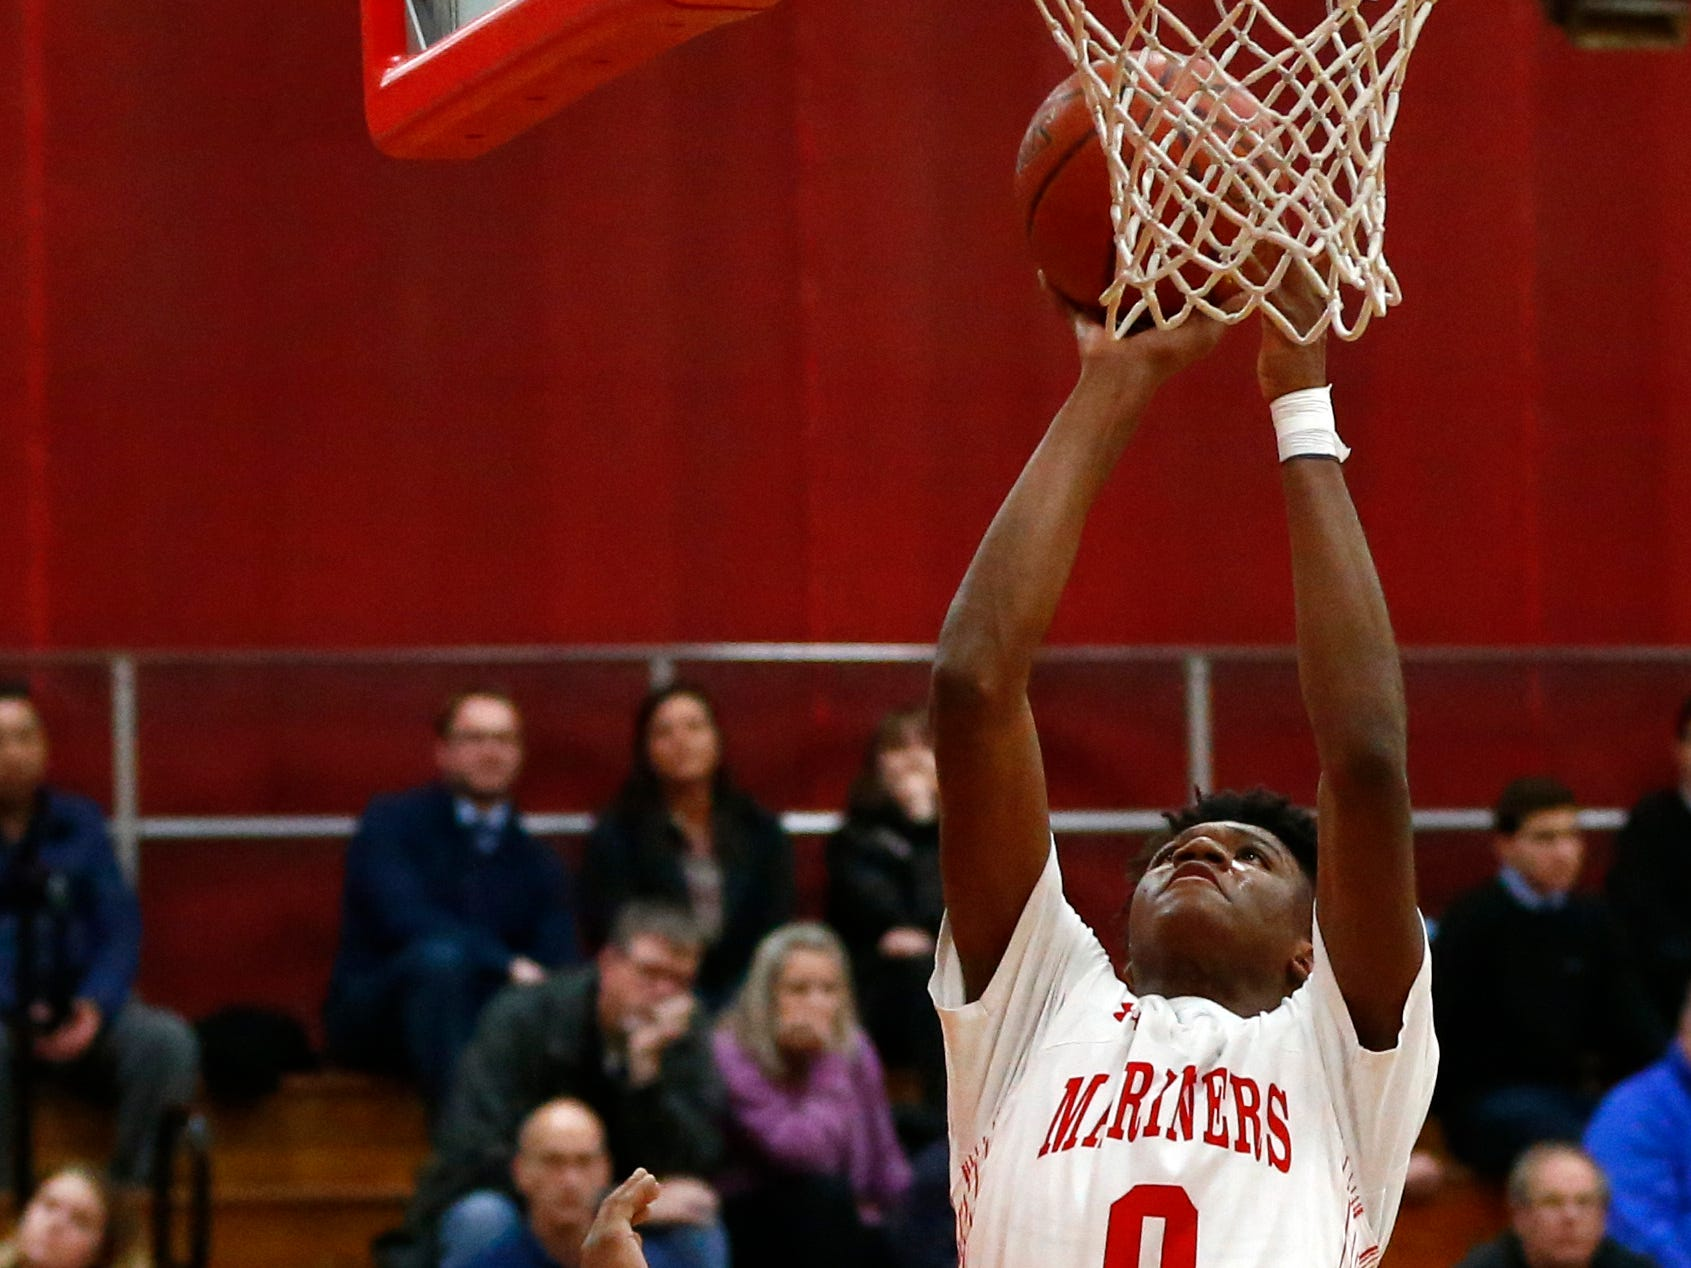 St. Francis' Isaiah Duncan fires for two points over St. Thomas More defenders at St. Francis on Jan. 10.